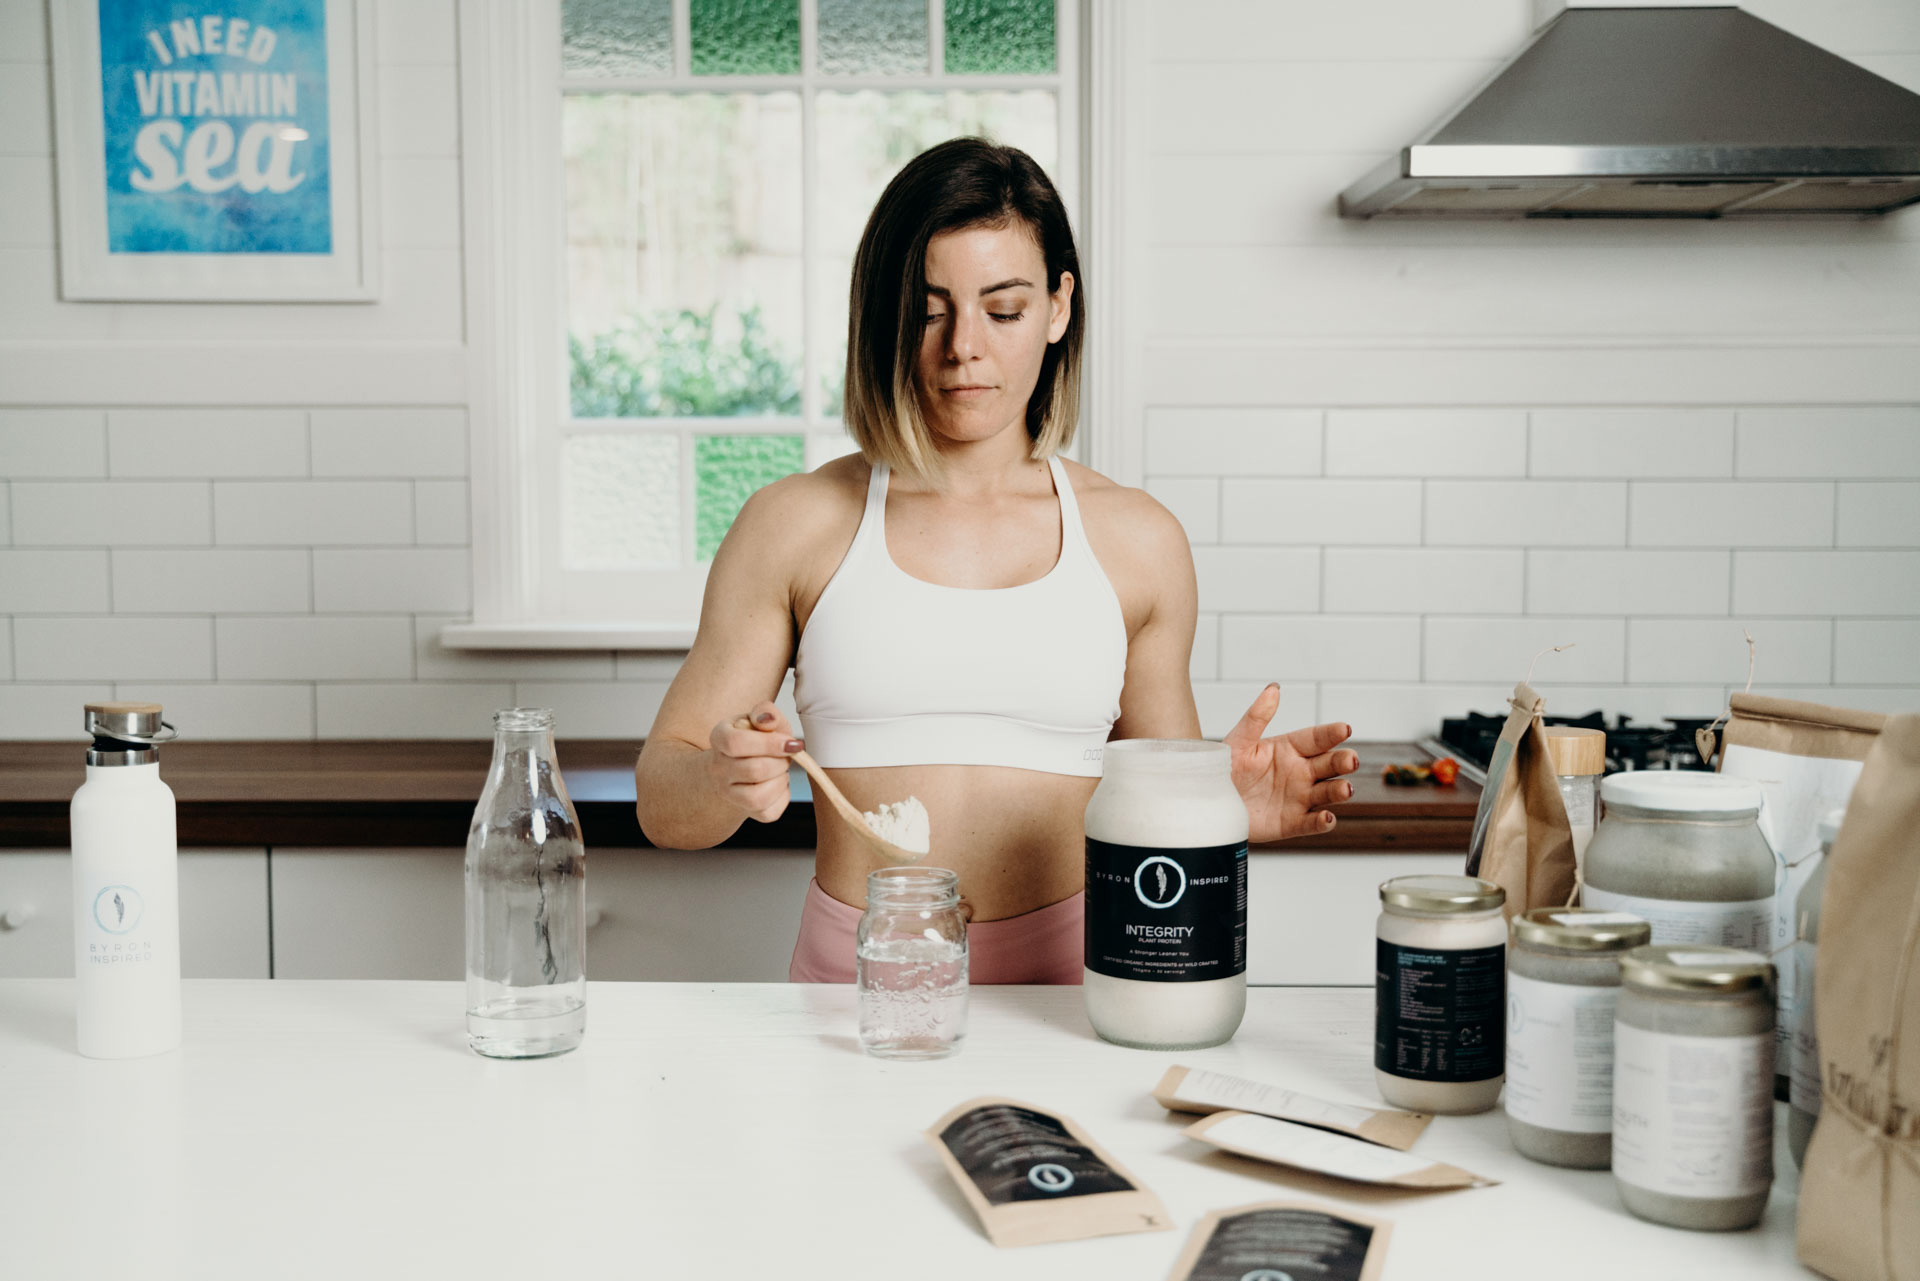 byron-Inspired-superfood-energy booster